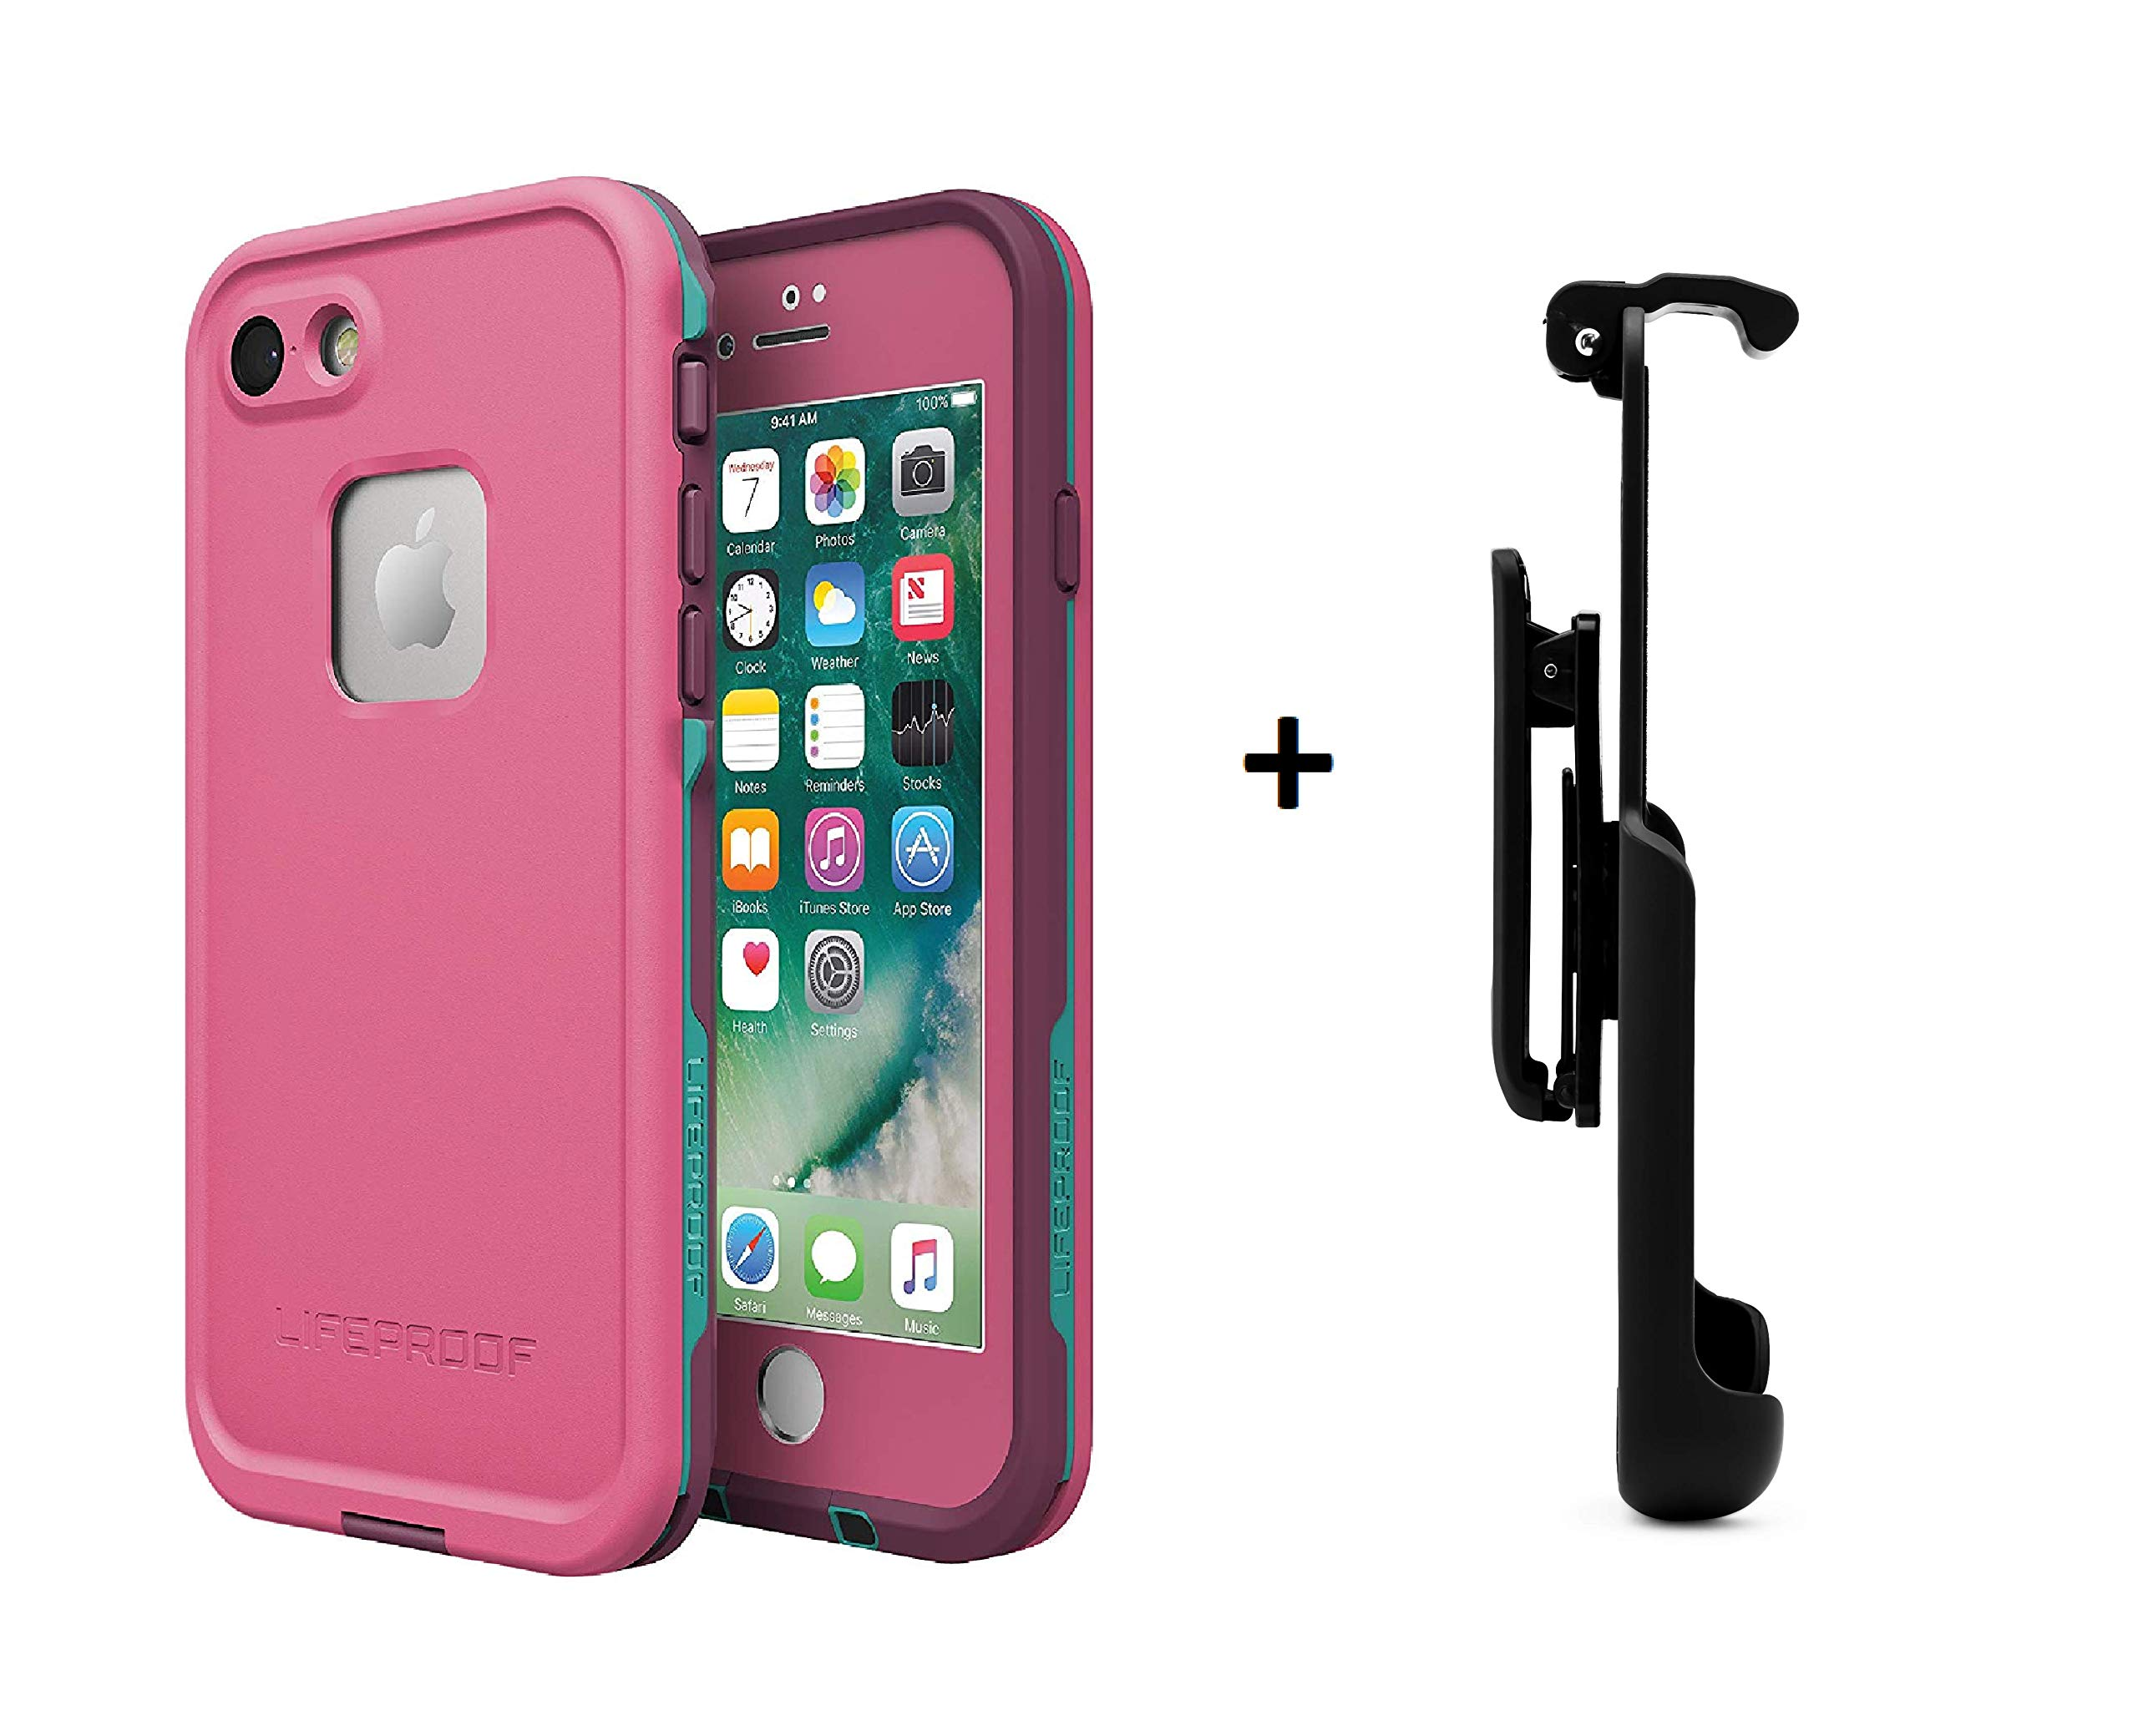 LifeProof FRÄ' Series Waterproof Case for iPhone 7 (ONLY) not Plus - Retail Packaging - (Twilight + Gear Pro Belt Clip) by LifeProof